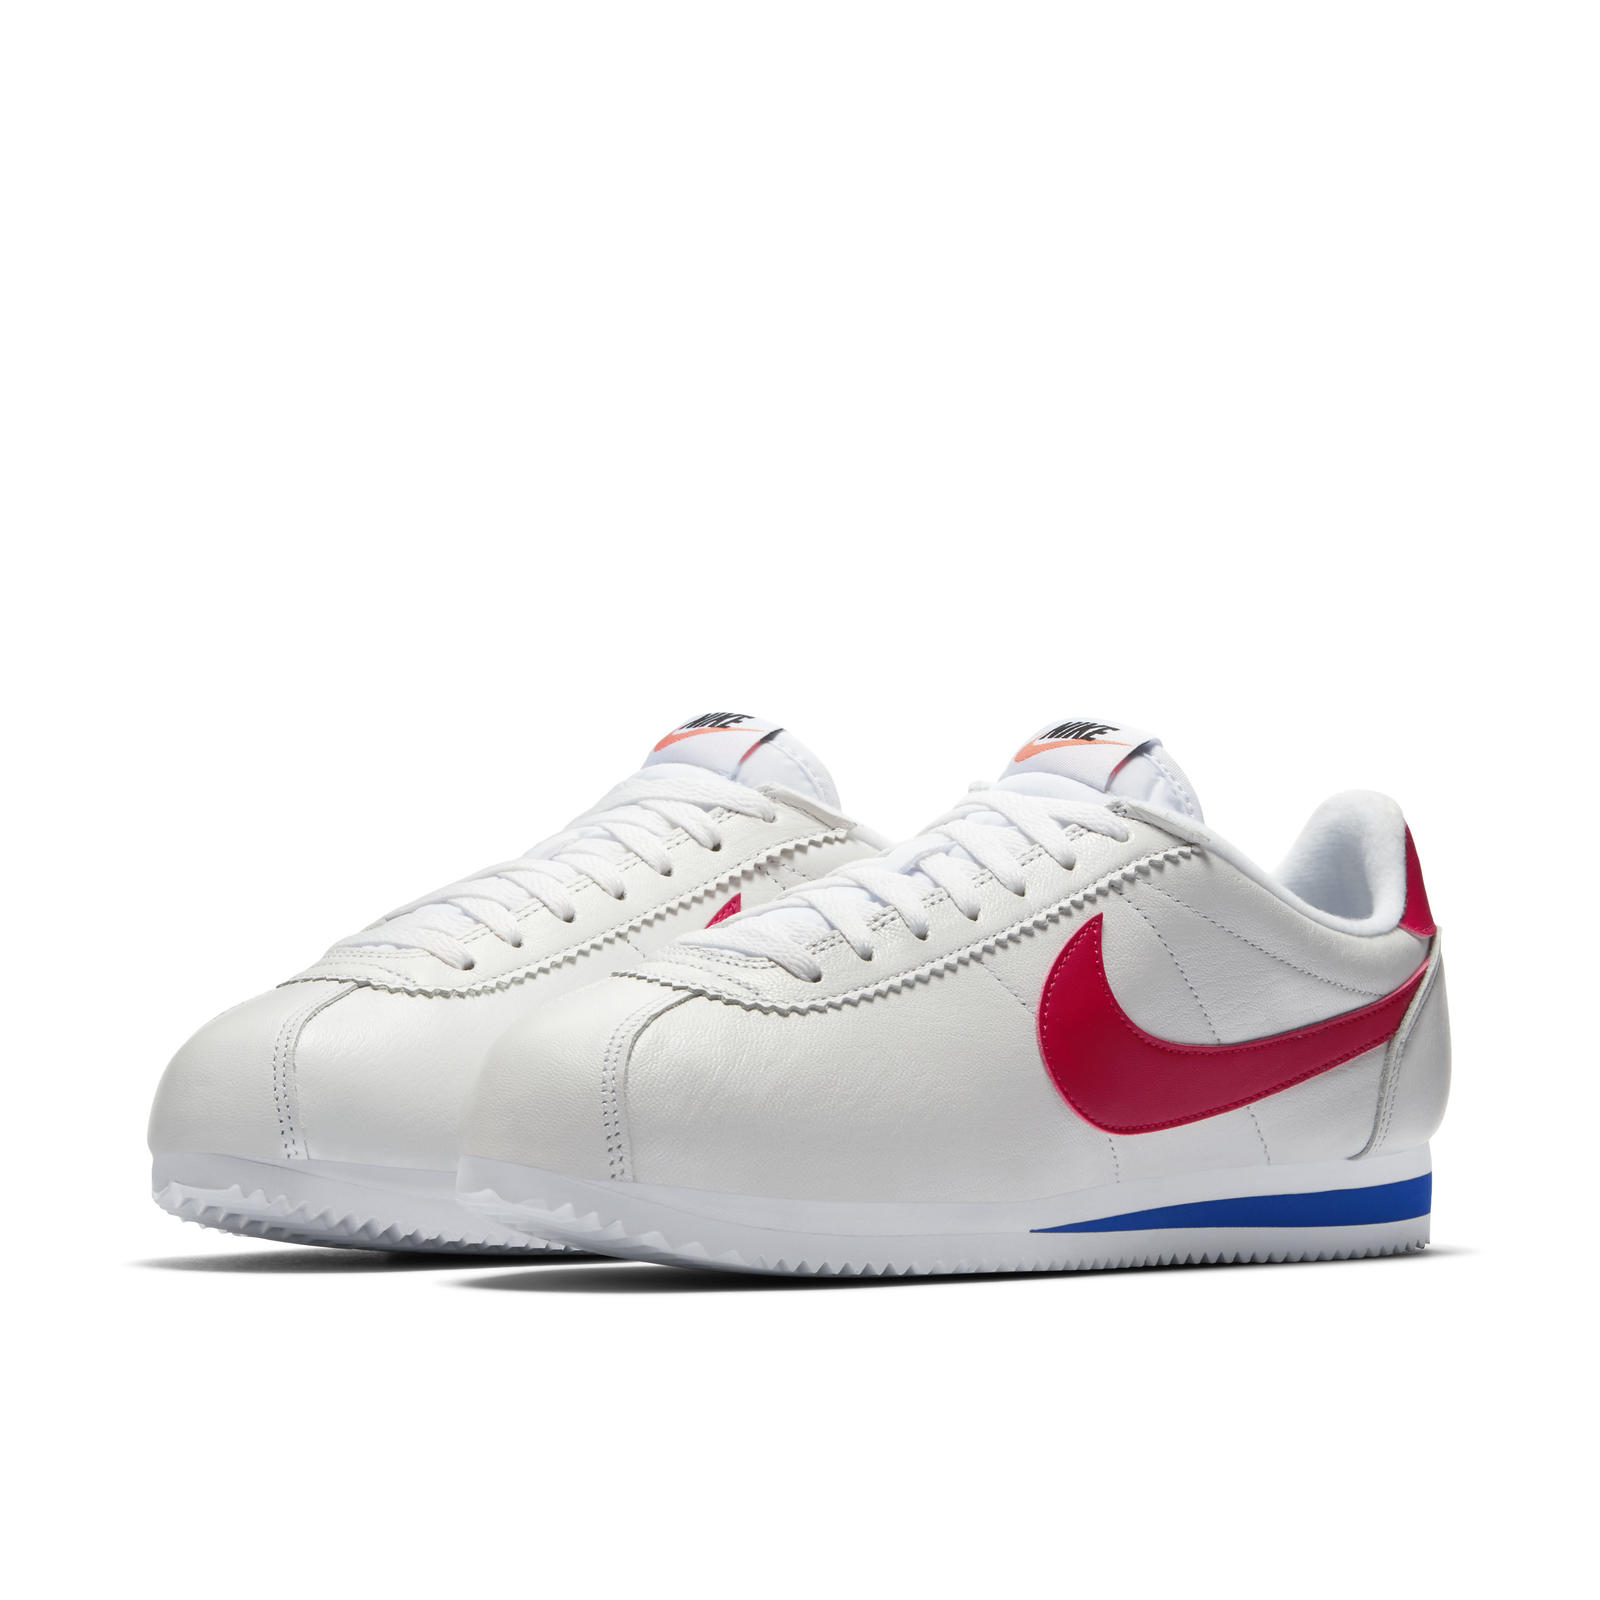 reputable site 7dc84 8e70f Celebrating 45 Years of Nike Cortez in Sport, Style and ...